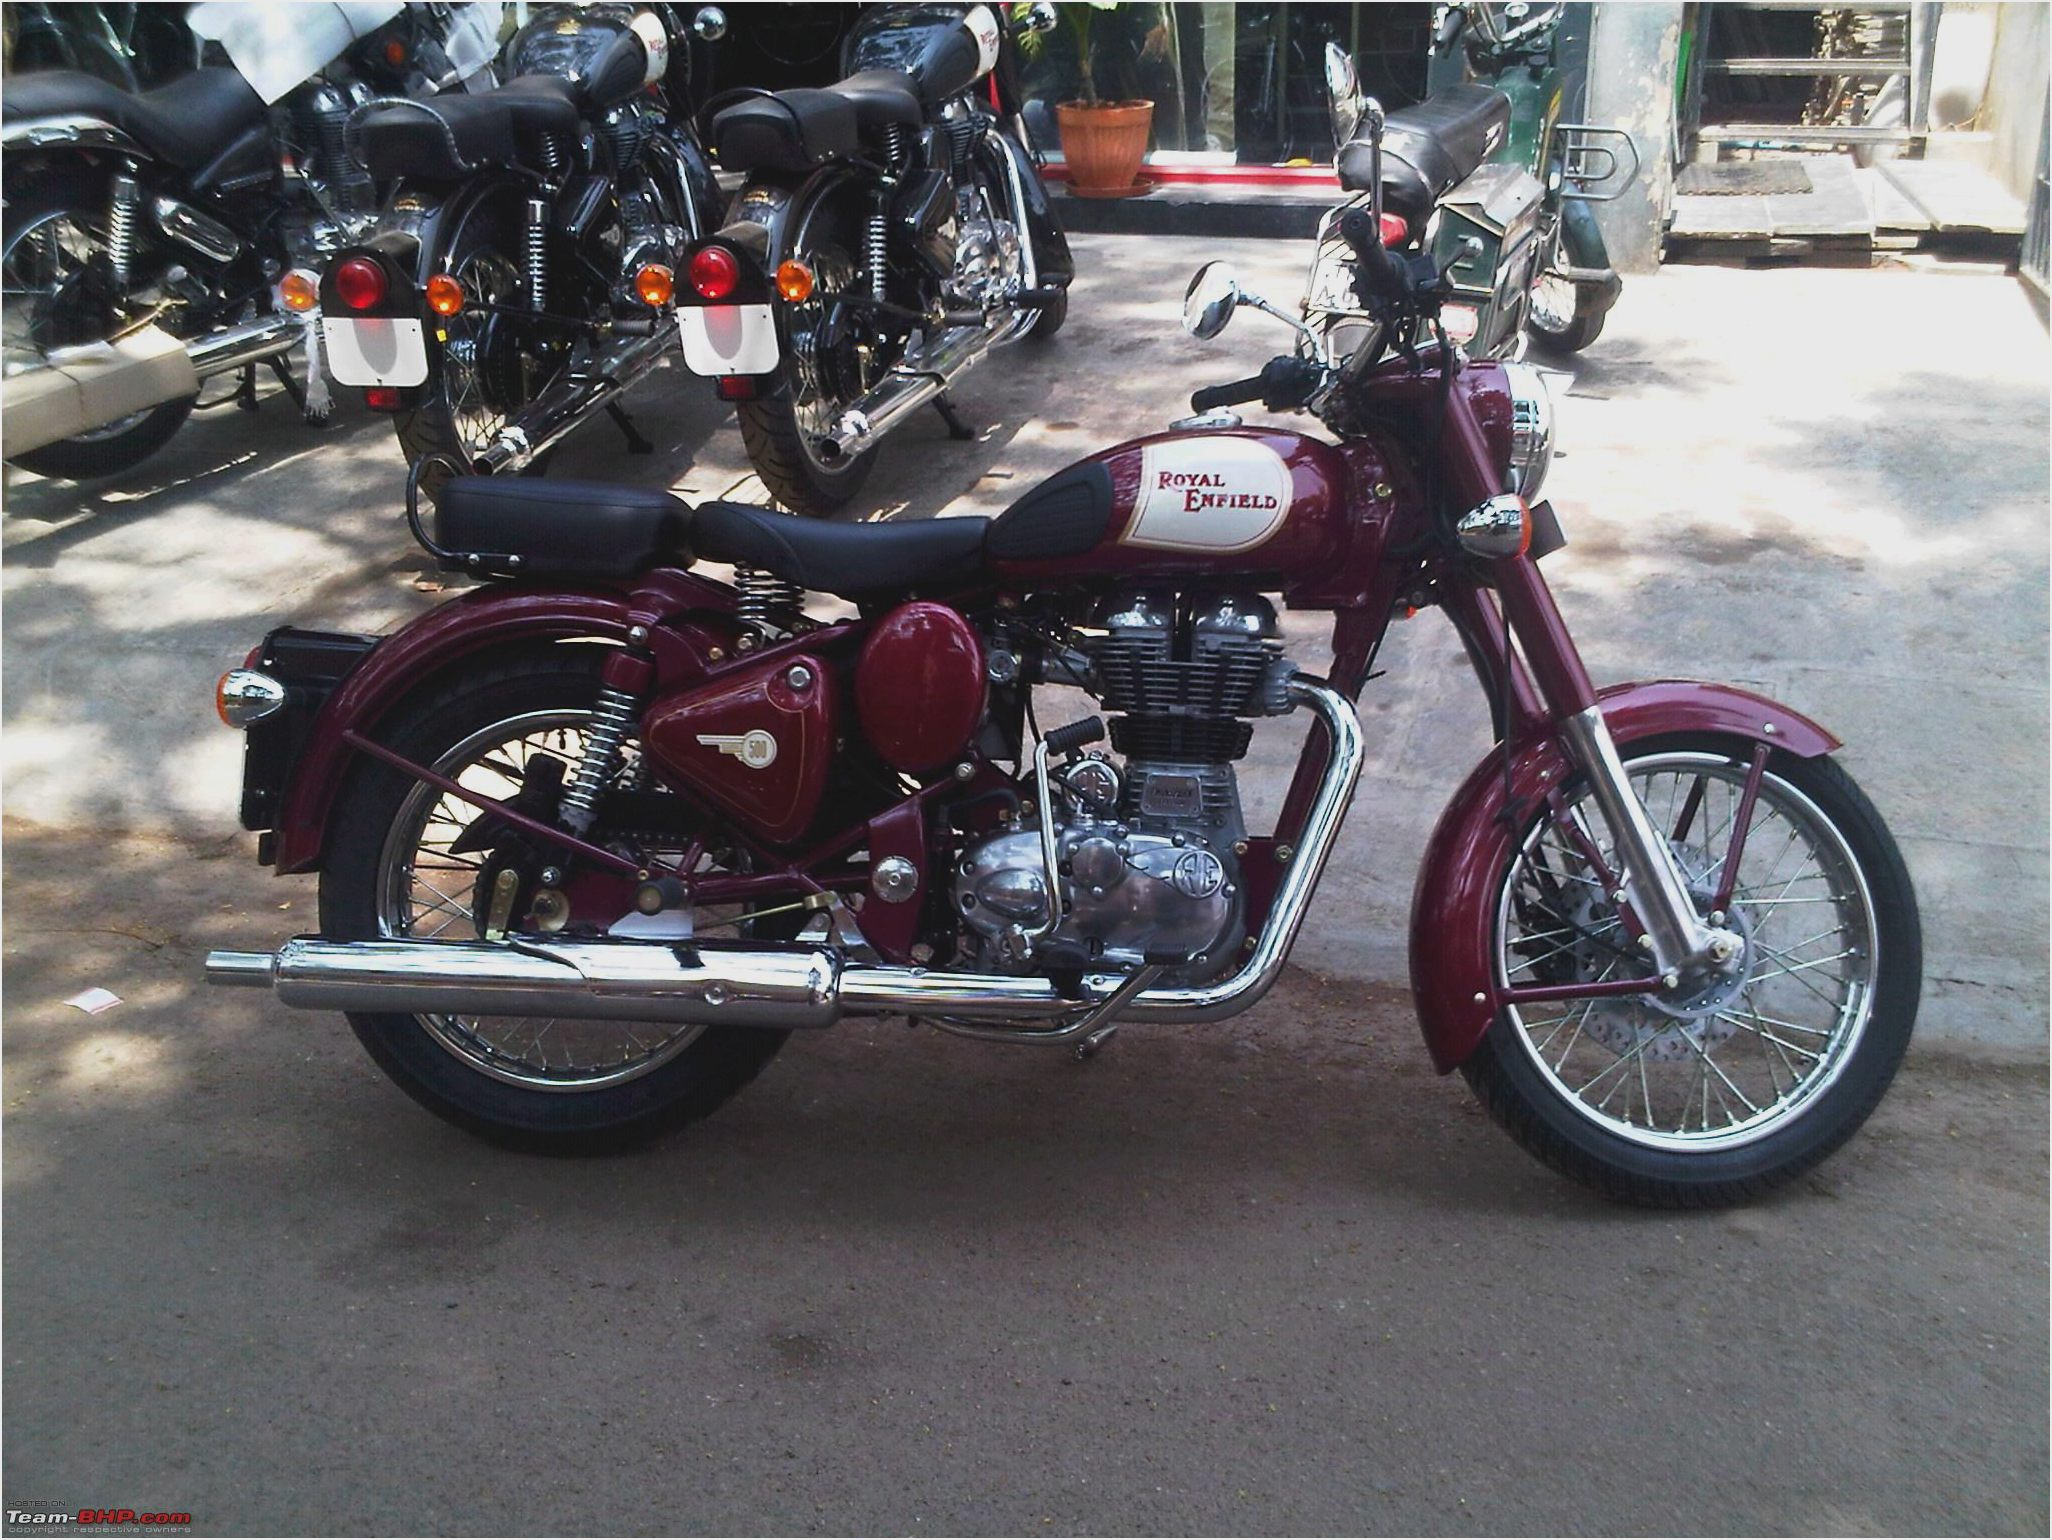 Royal Enfield Bullet 350 Classic 2009 images #123518